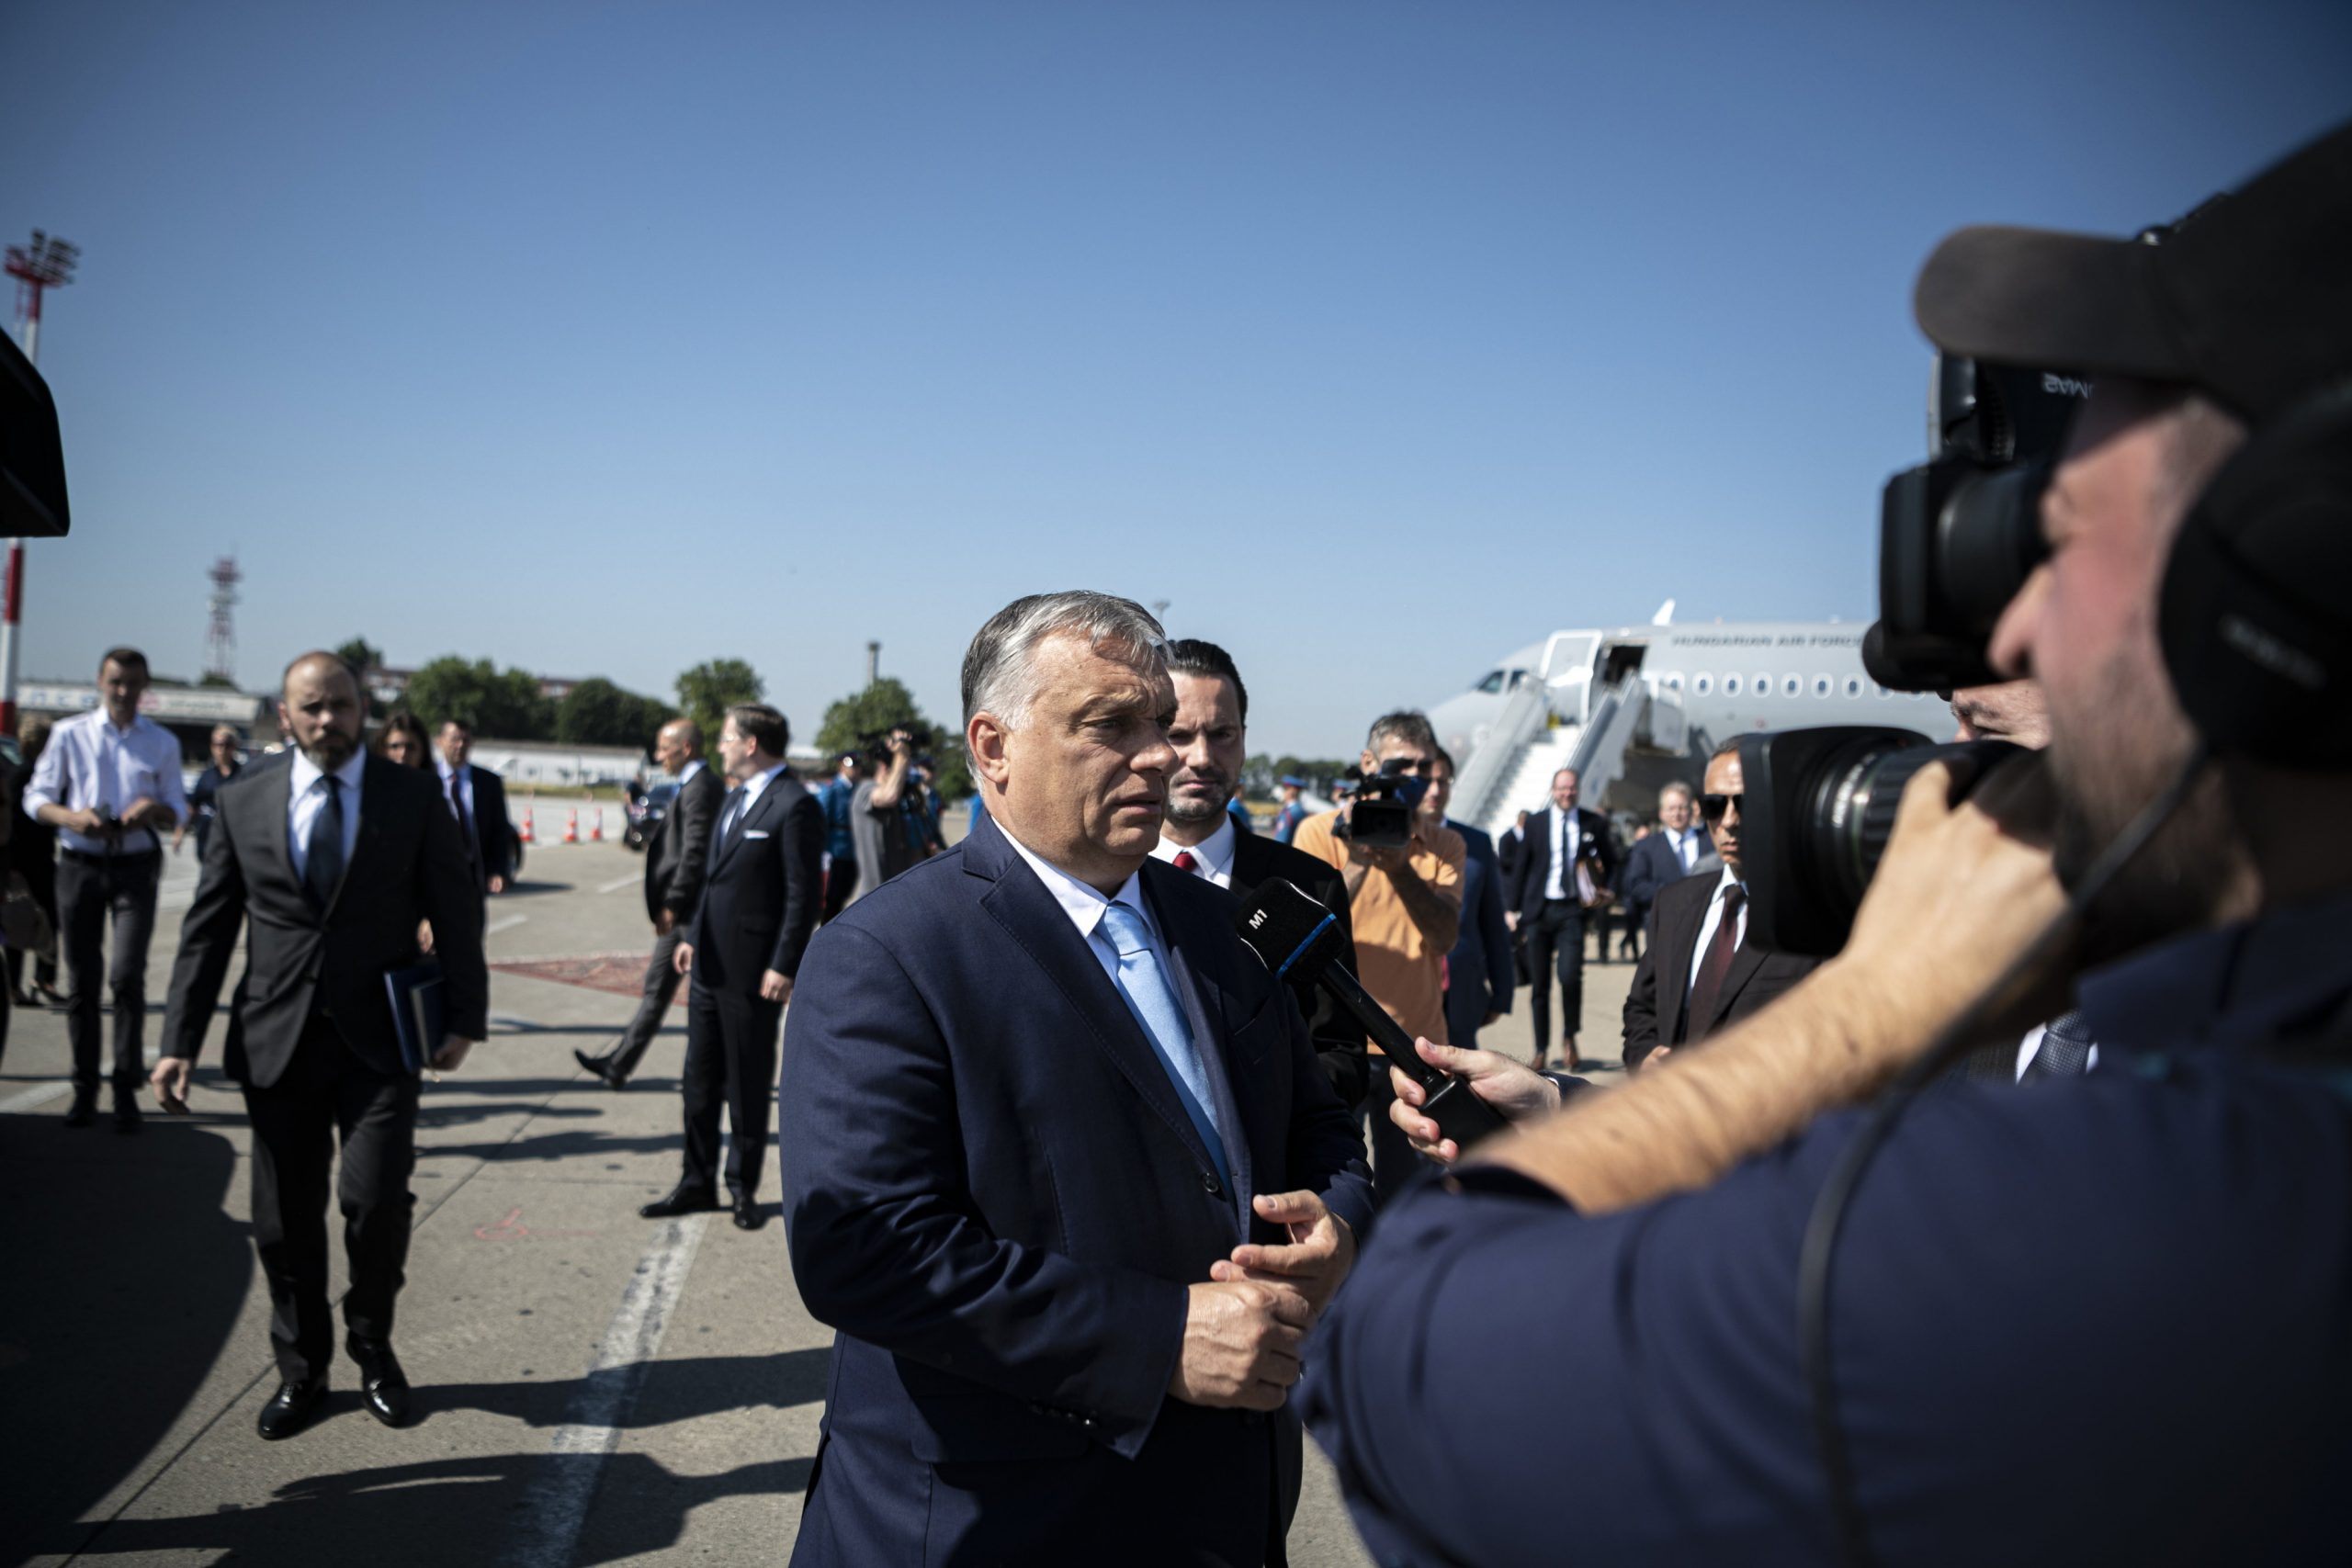 Orbán: Brussels Wants Hungary to Allow LGBTQ Activists in Schools, Kindergartens